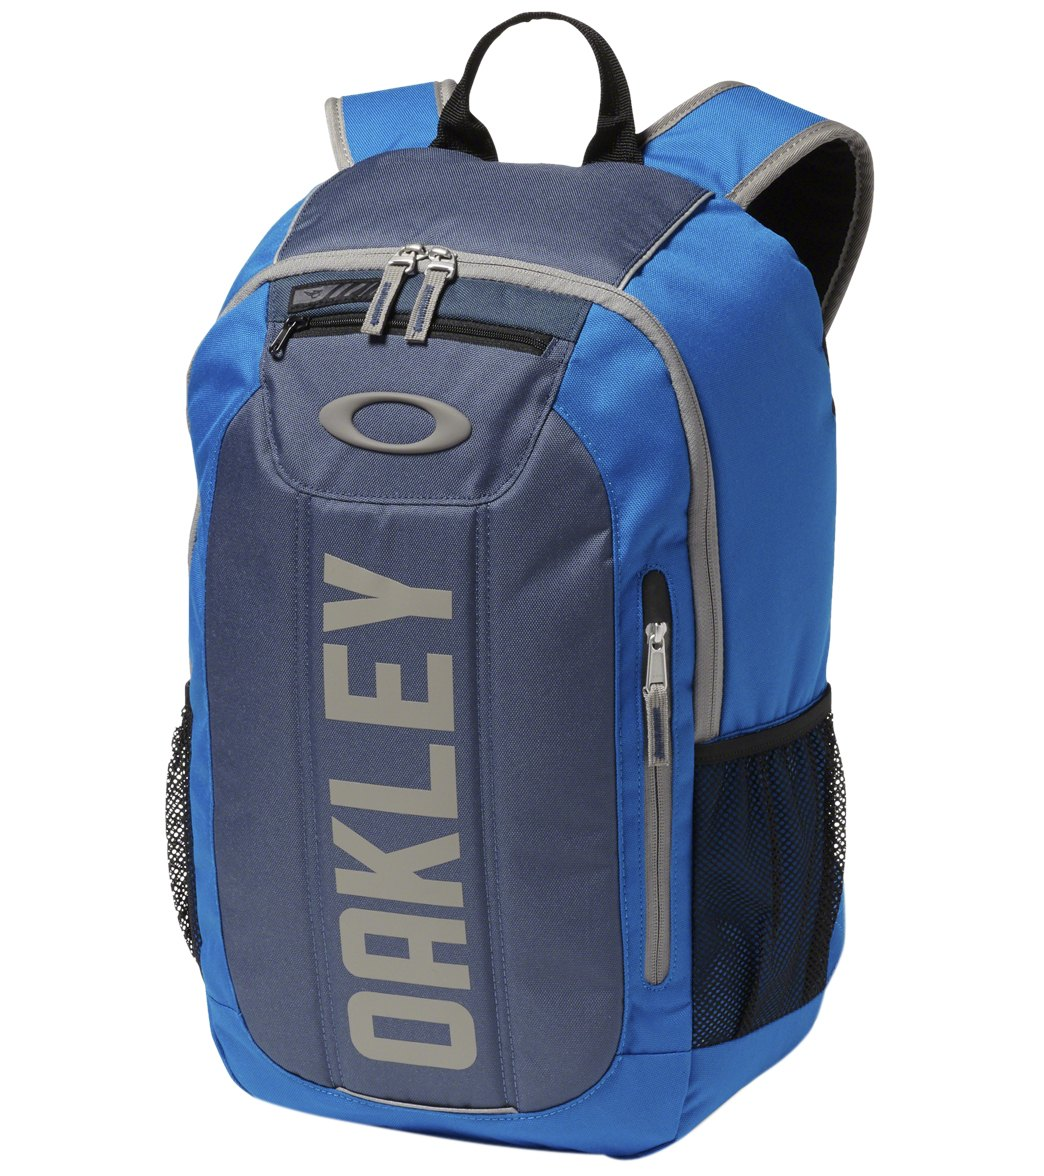 89fc3c0c44 Oakley Enduro 20L 2.0 Backpack at SwimOutlet.com - Free Shipping